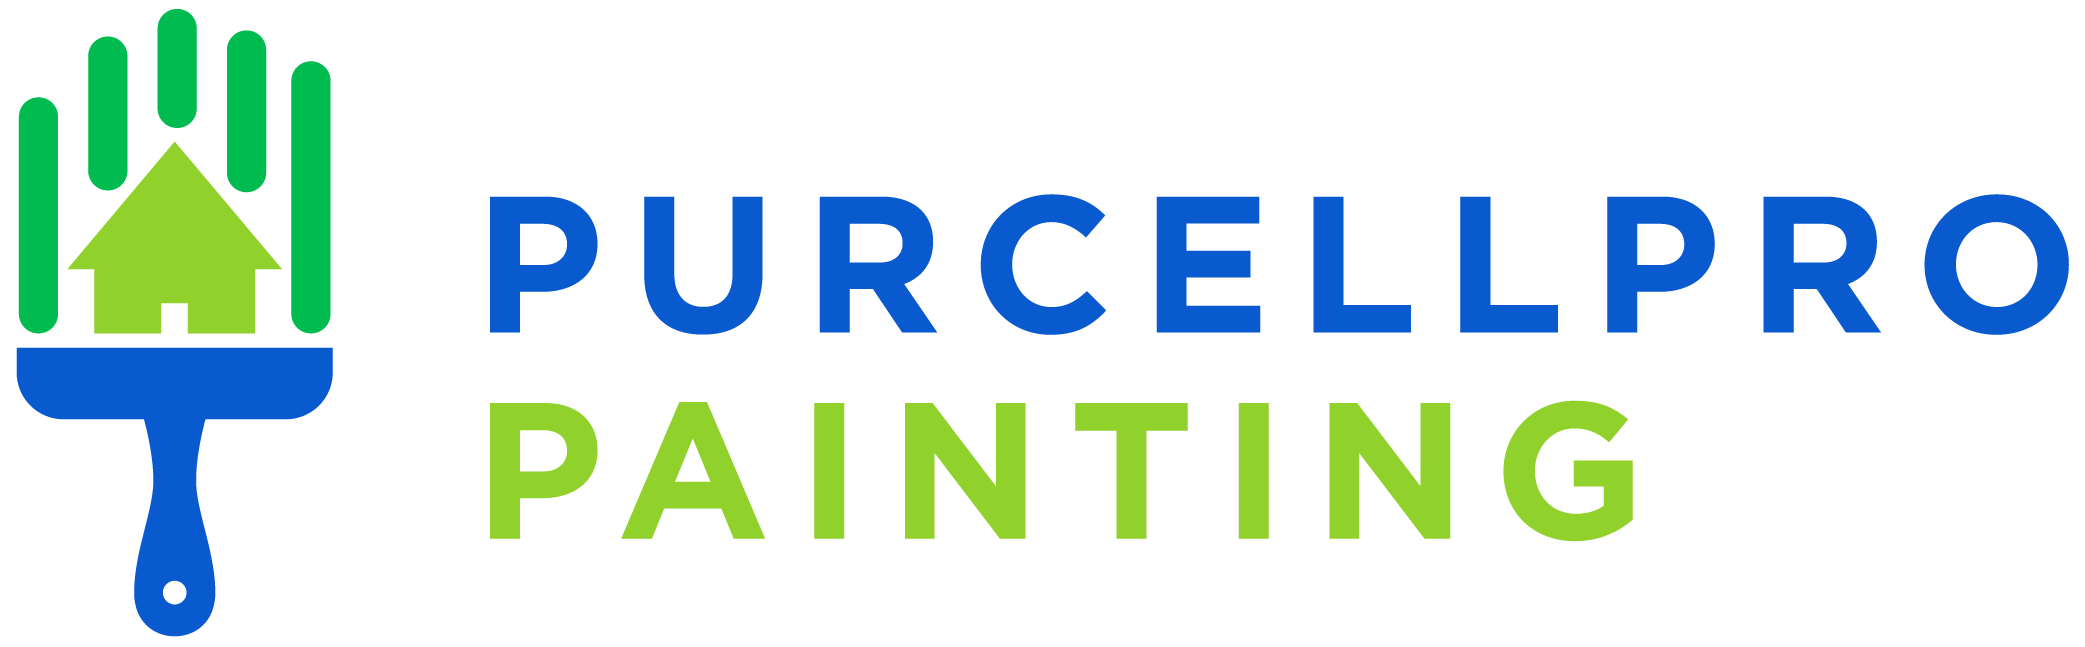 Residential Commercial Painter Contractor | Purcellpro Painting | Lansdale PA Logo